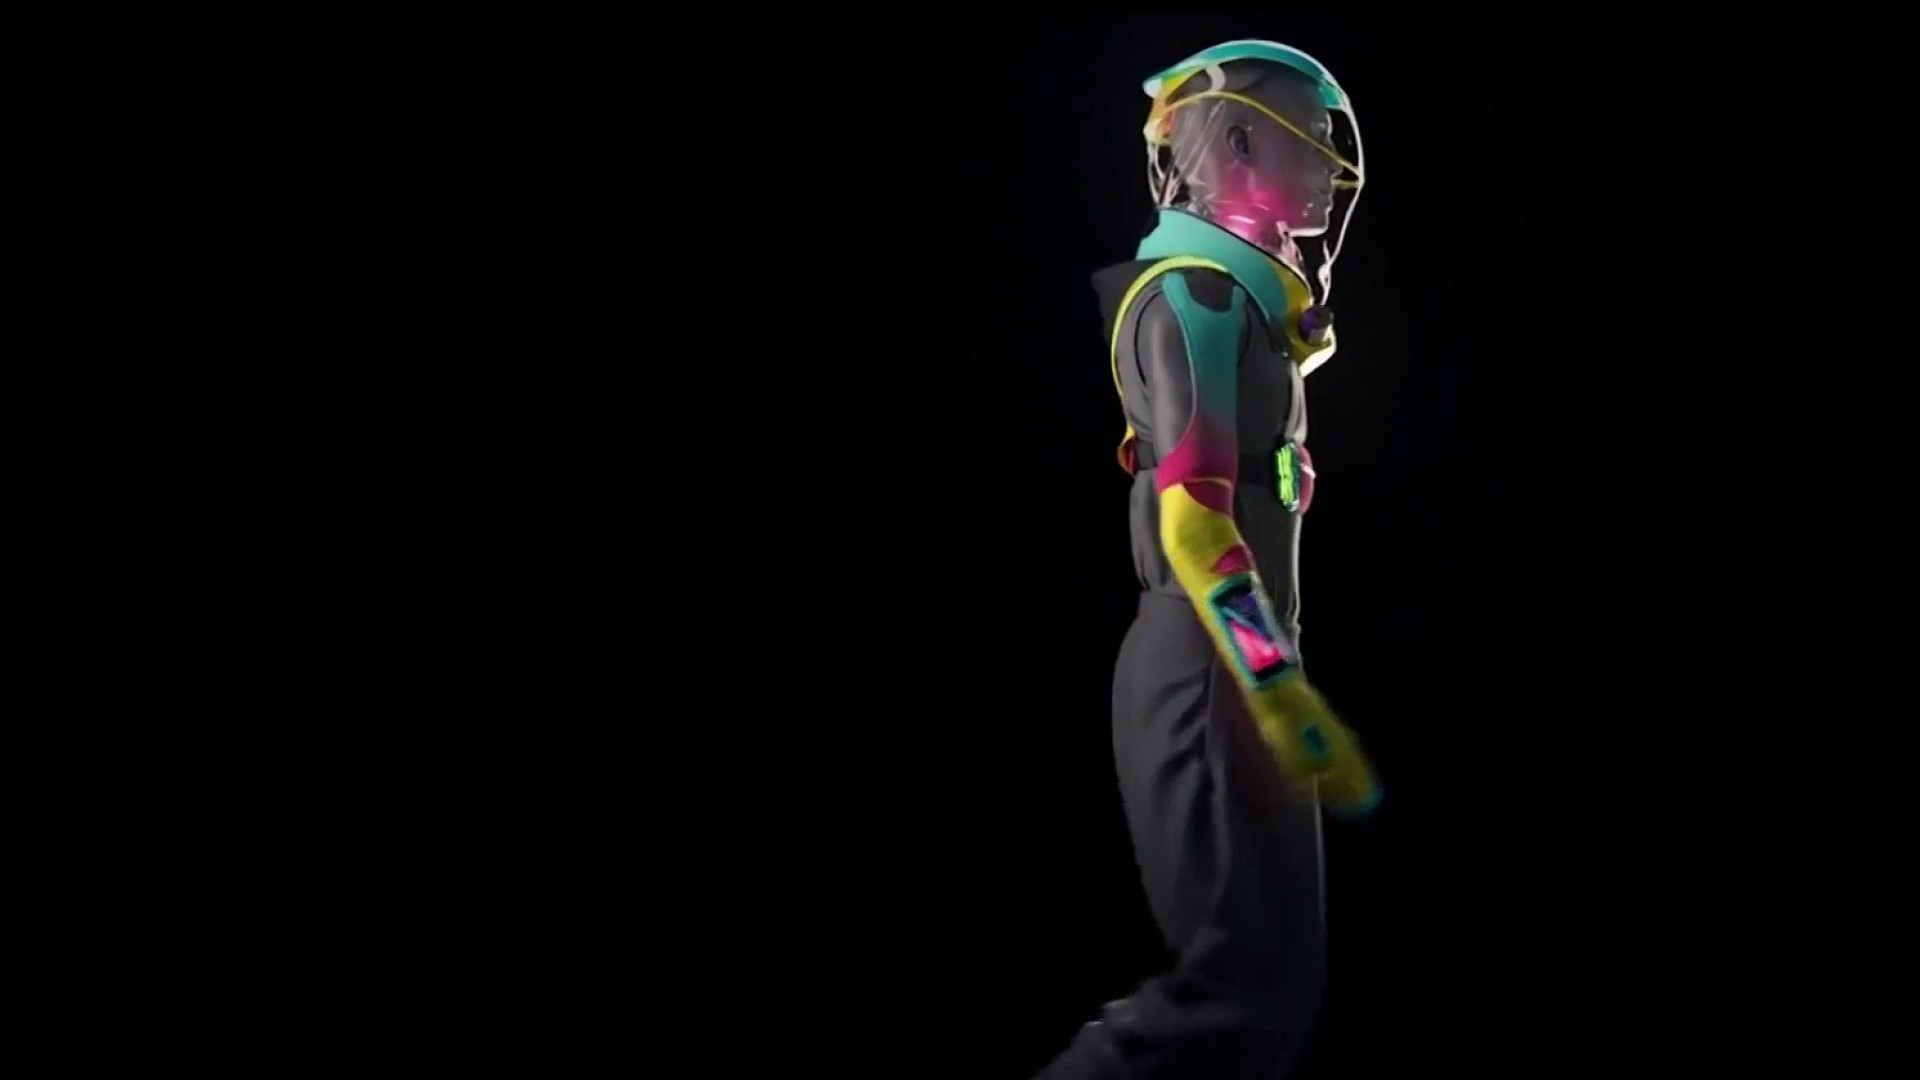 Calif. Design Firm Working on Protective Suit for Concerts and Clubbing